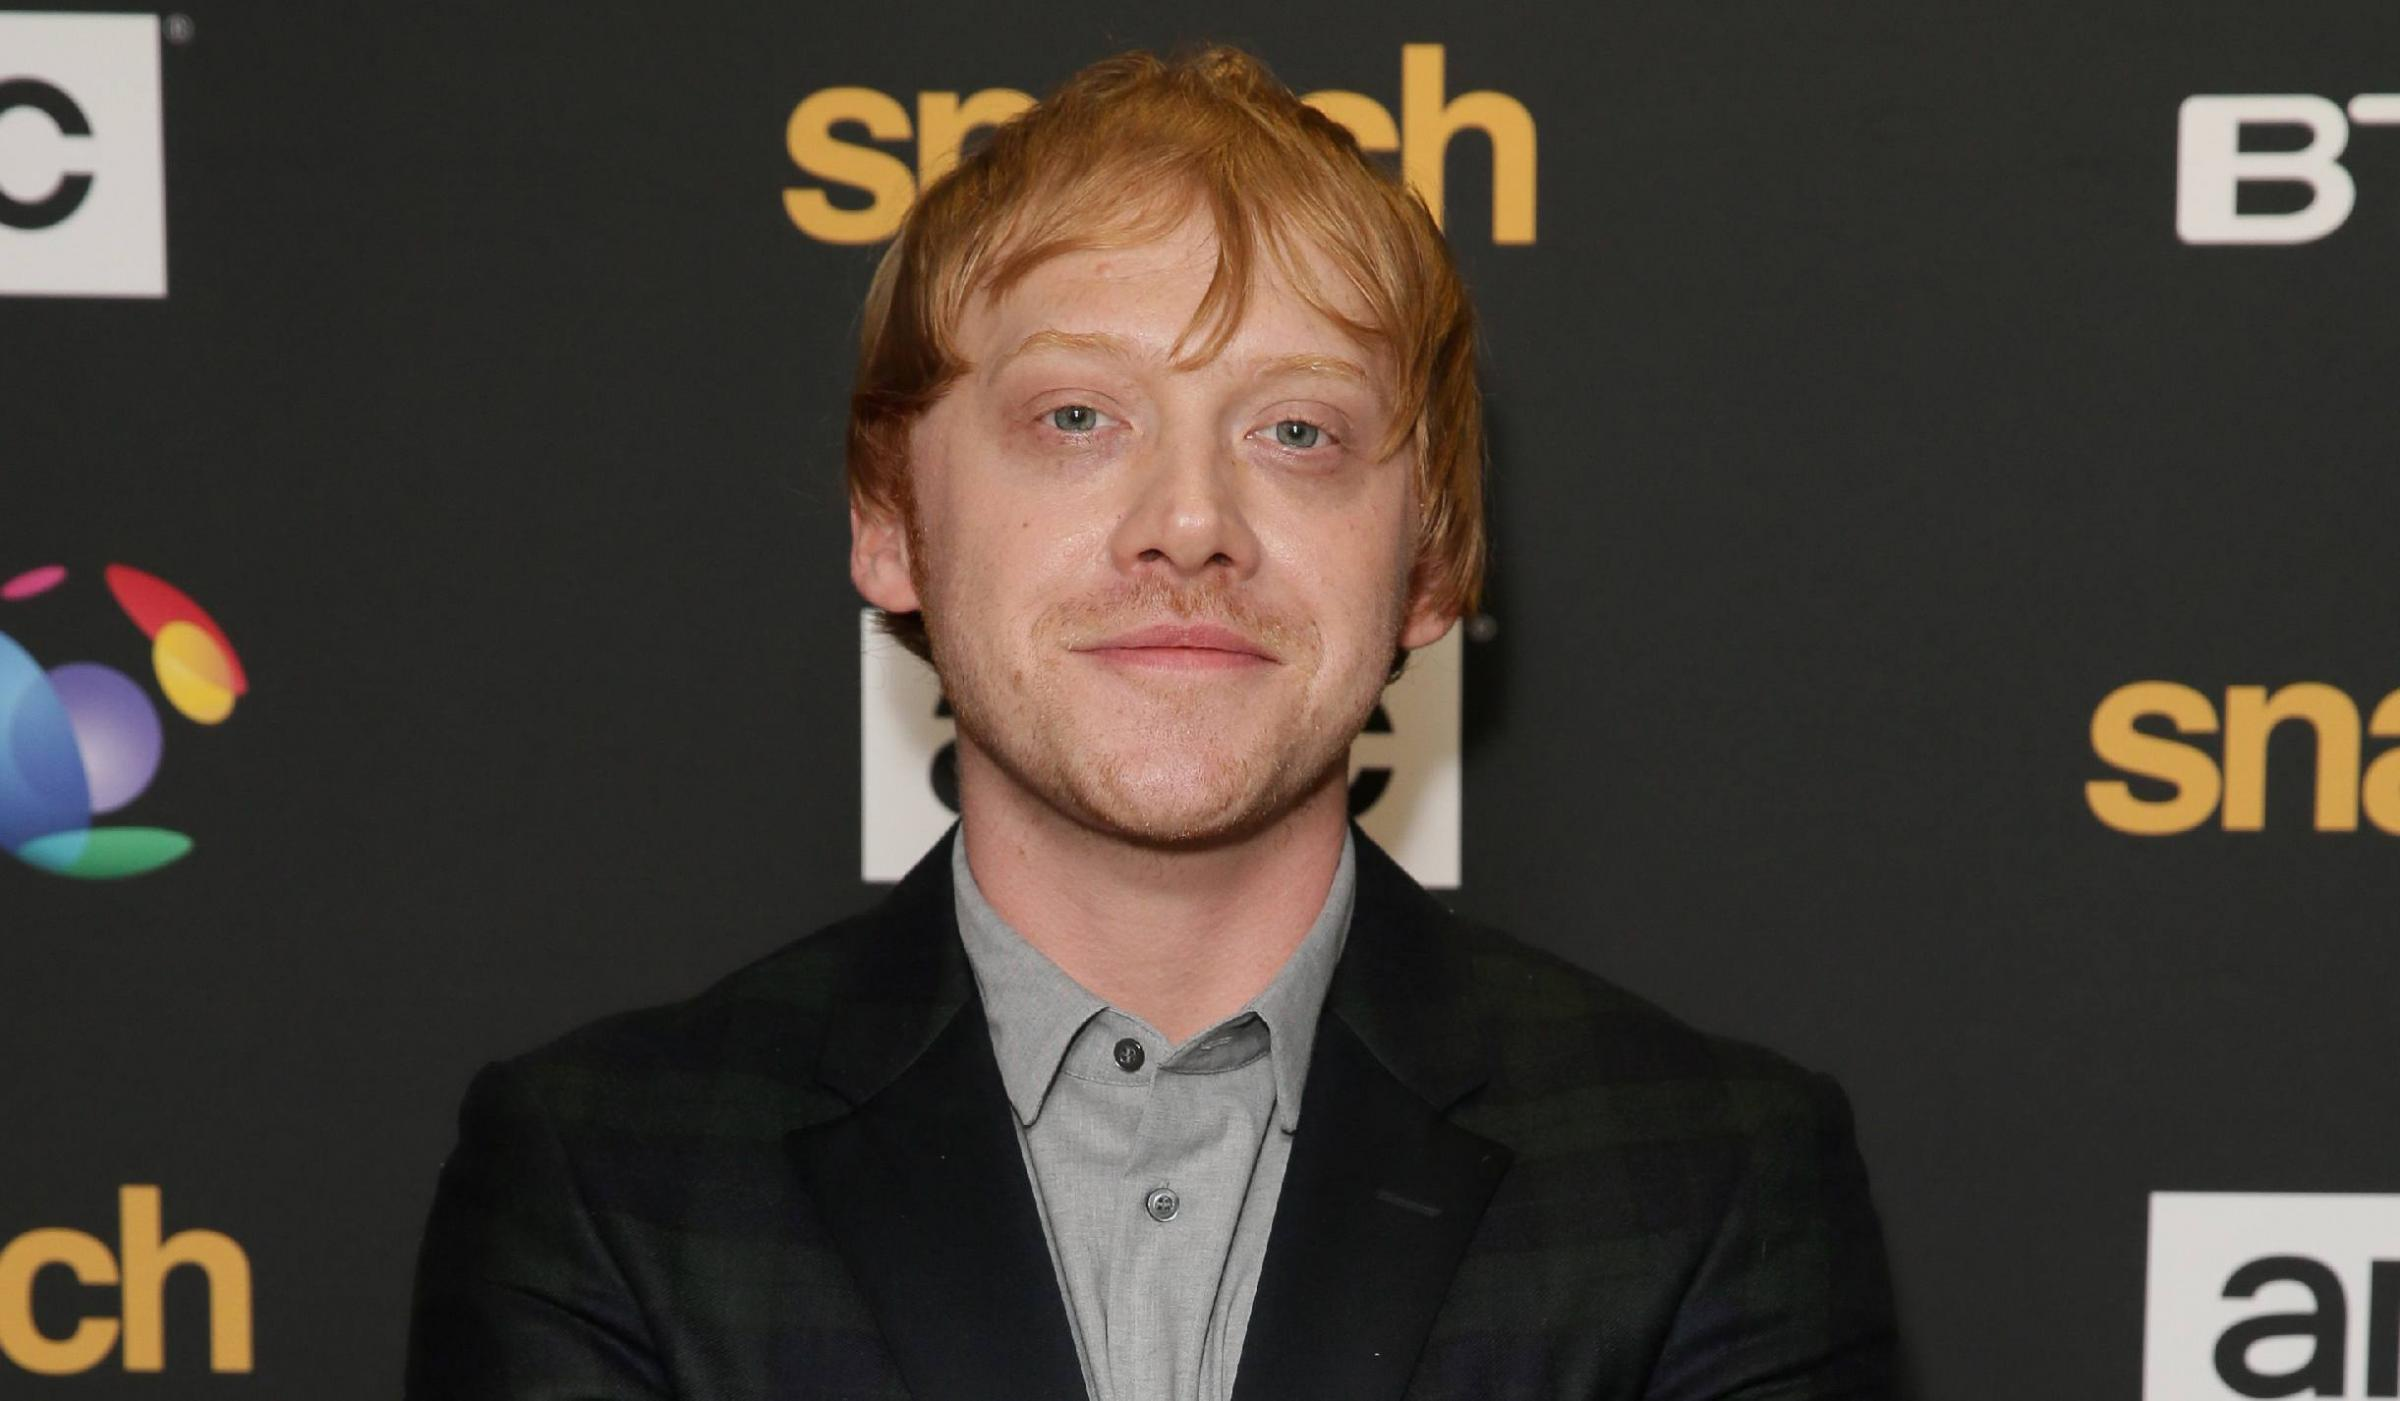 Rupert Grint is coming to Wales Comic Con in Wrexham